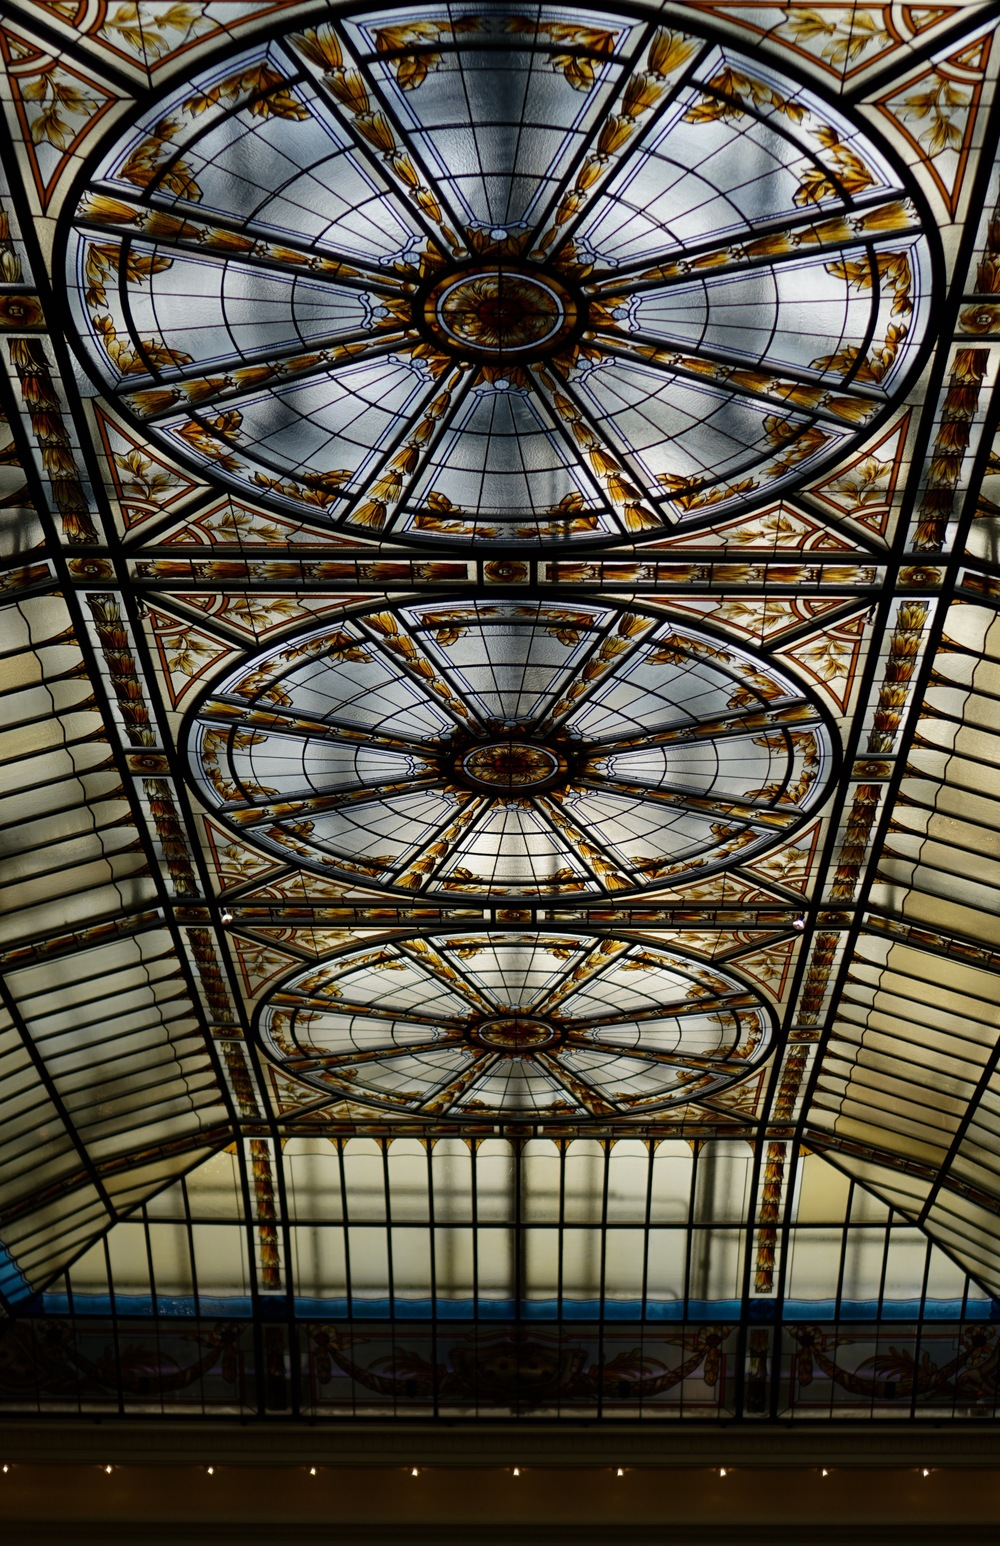 Ceiling of the Belleview Palace lobby